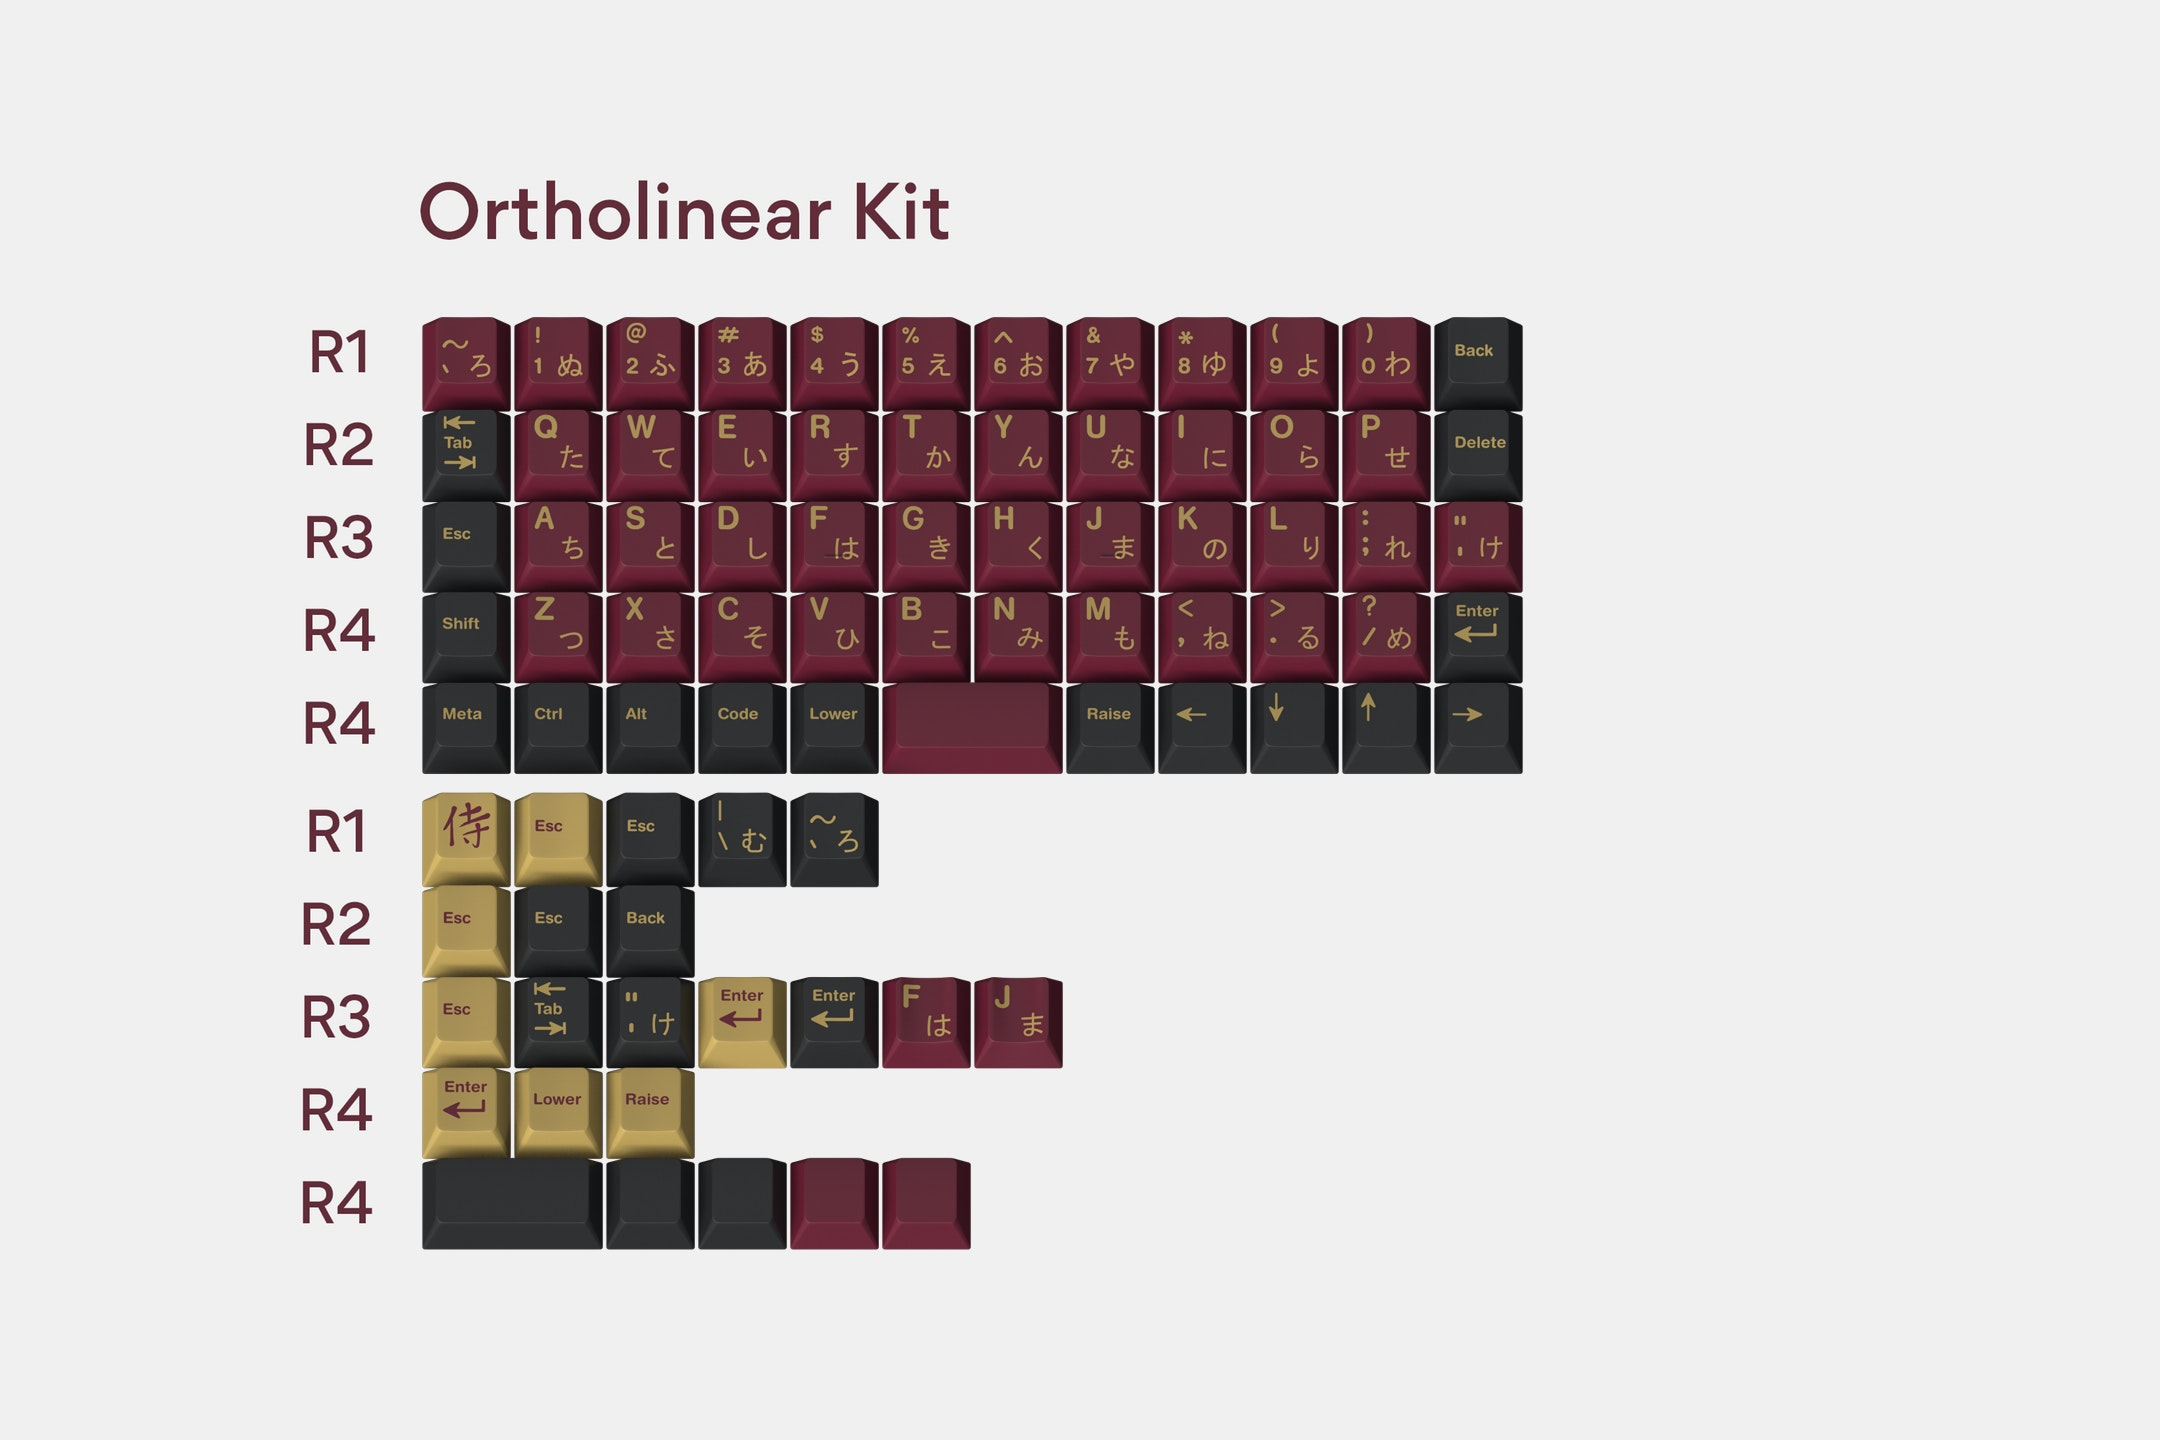 Ortholinear